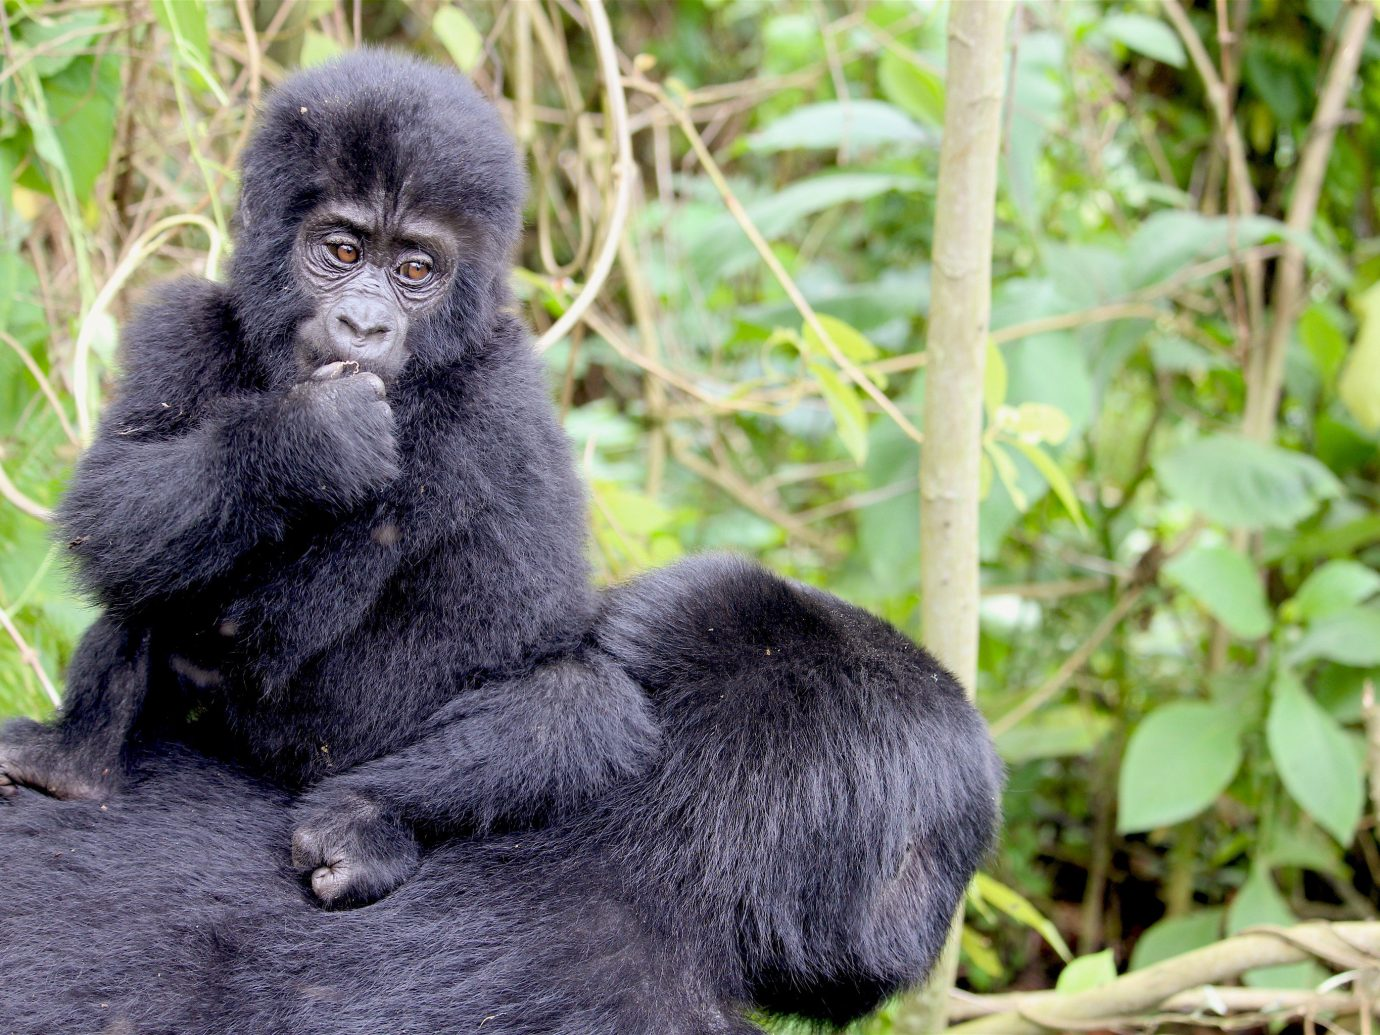 africa Belize Bhutan Hotels Iran Laos Madagascar Secret Getaways Slovenia Tanzania Trip Ideas Uganda animal mammal primate great ape ape outdoor western gorilla black fauna Wildlife leaf rainforest terrestrial animal Jungle grass organism Forest chimpanzee snout